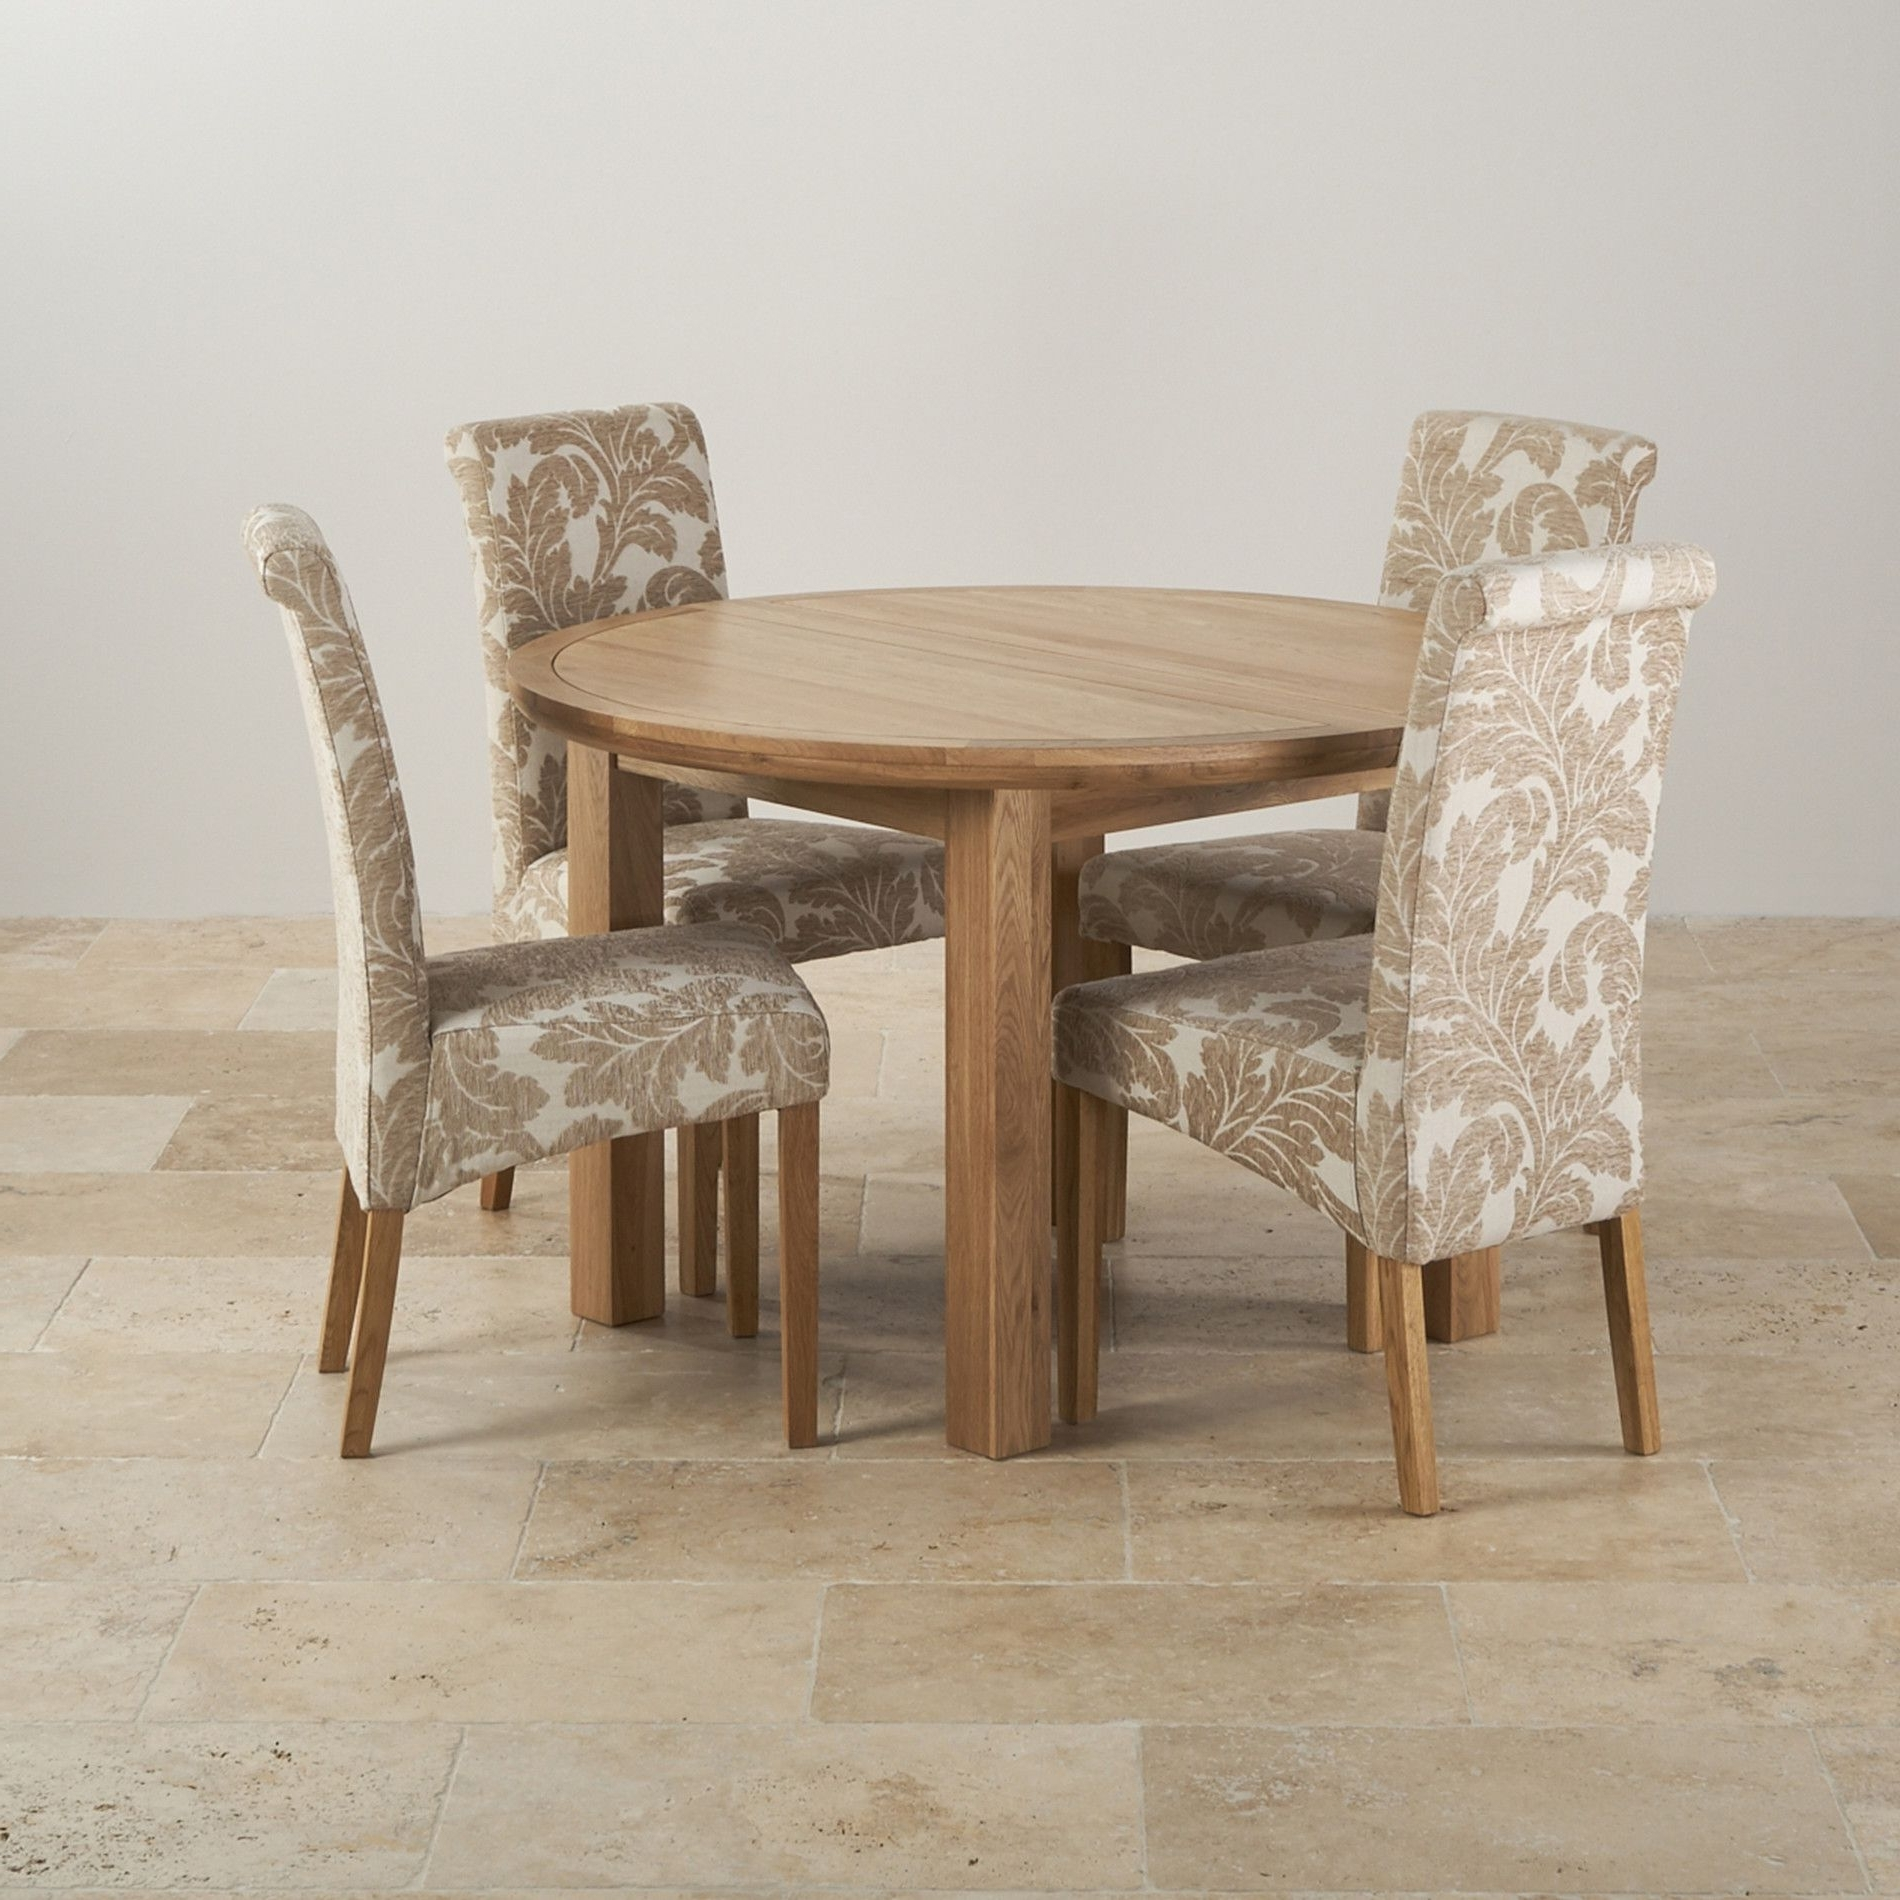 Knightsbridge Natural Oak Dining Set – 4Ft Round Extending Table & 4 Regarding Favorite Oak Extending Dining Tables And 4 Chairs (View 15 of 25)